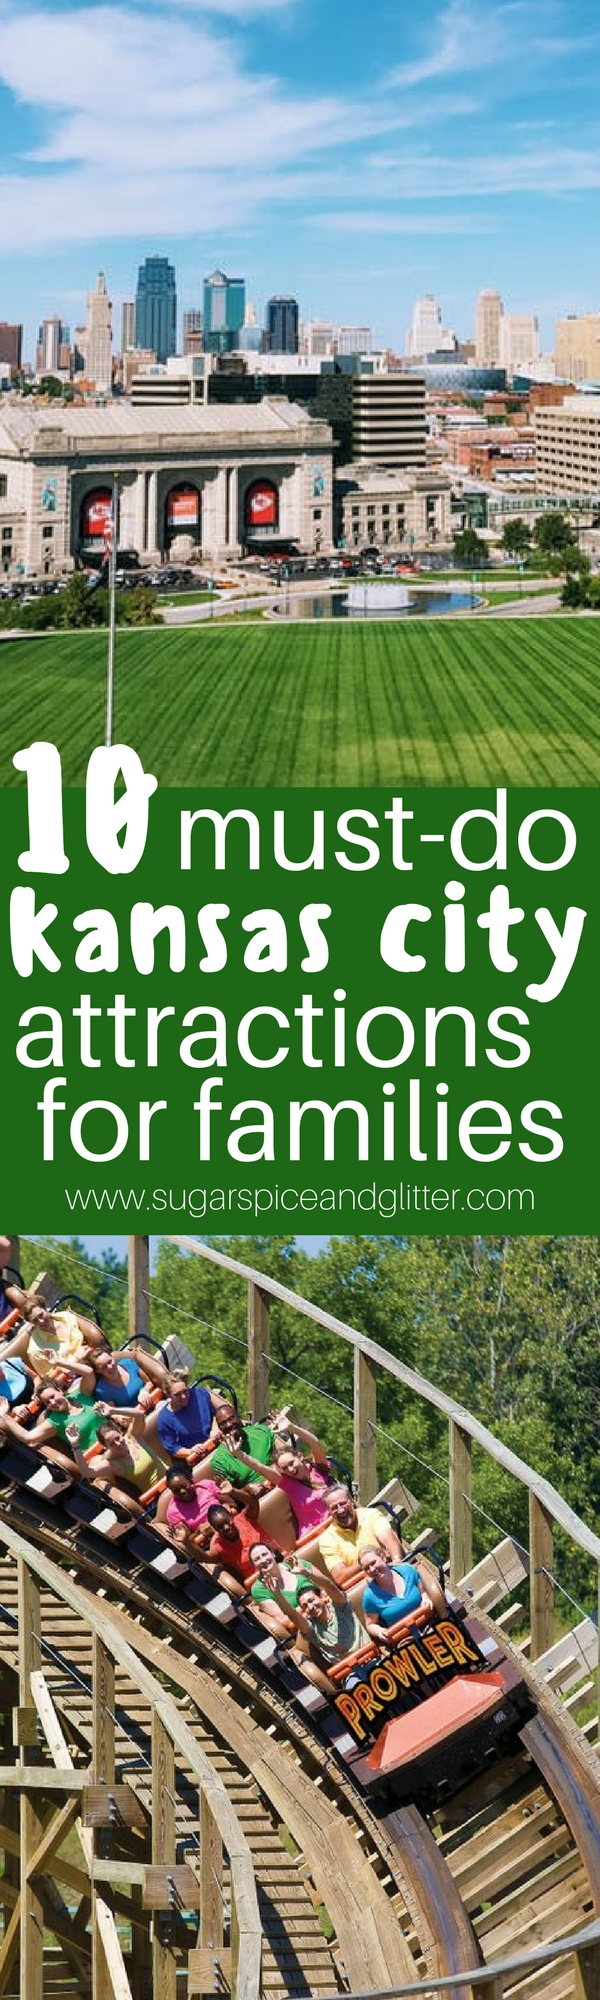 Kansas city is so much more than BBQ, Jazz and Fountains - though any trip to the city would be remiss without indulging in all three! Check out our list of the top 10 Must-do Kansas City Attractions for families